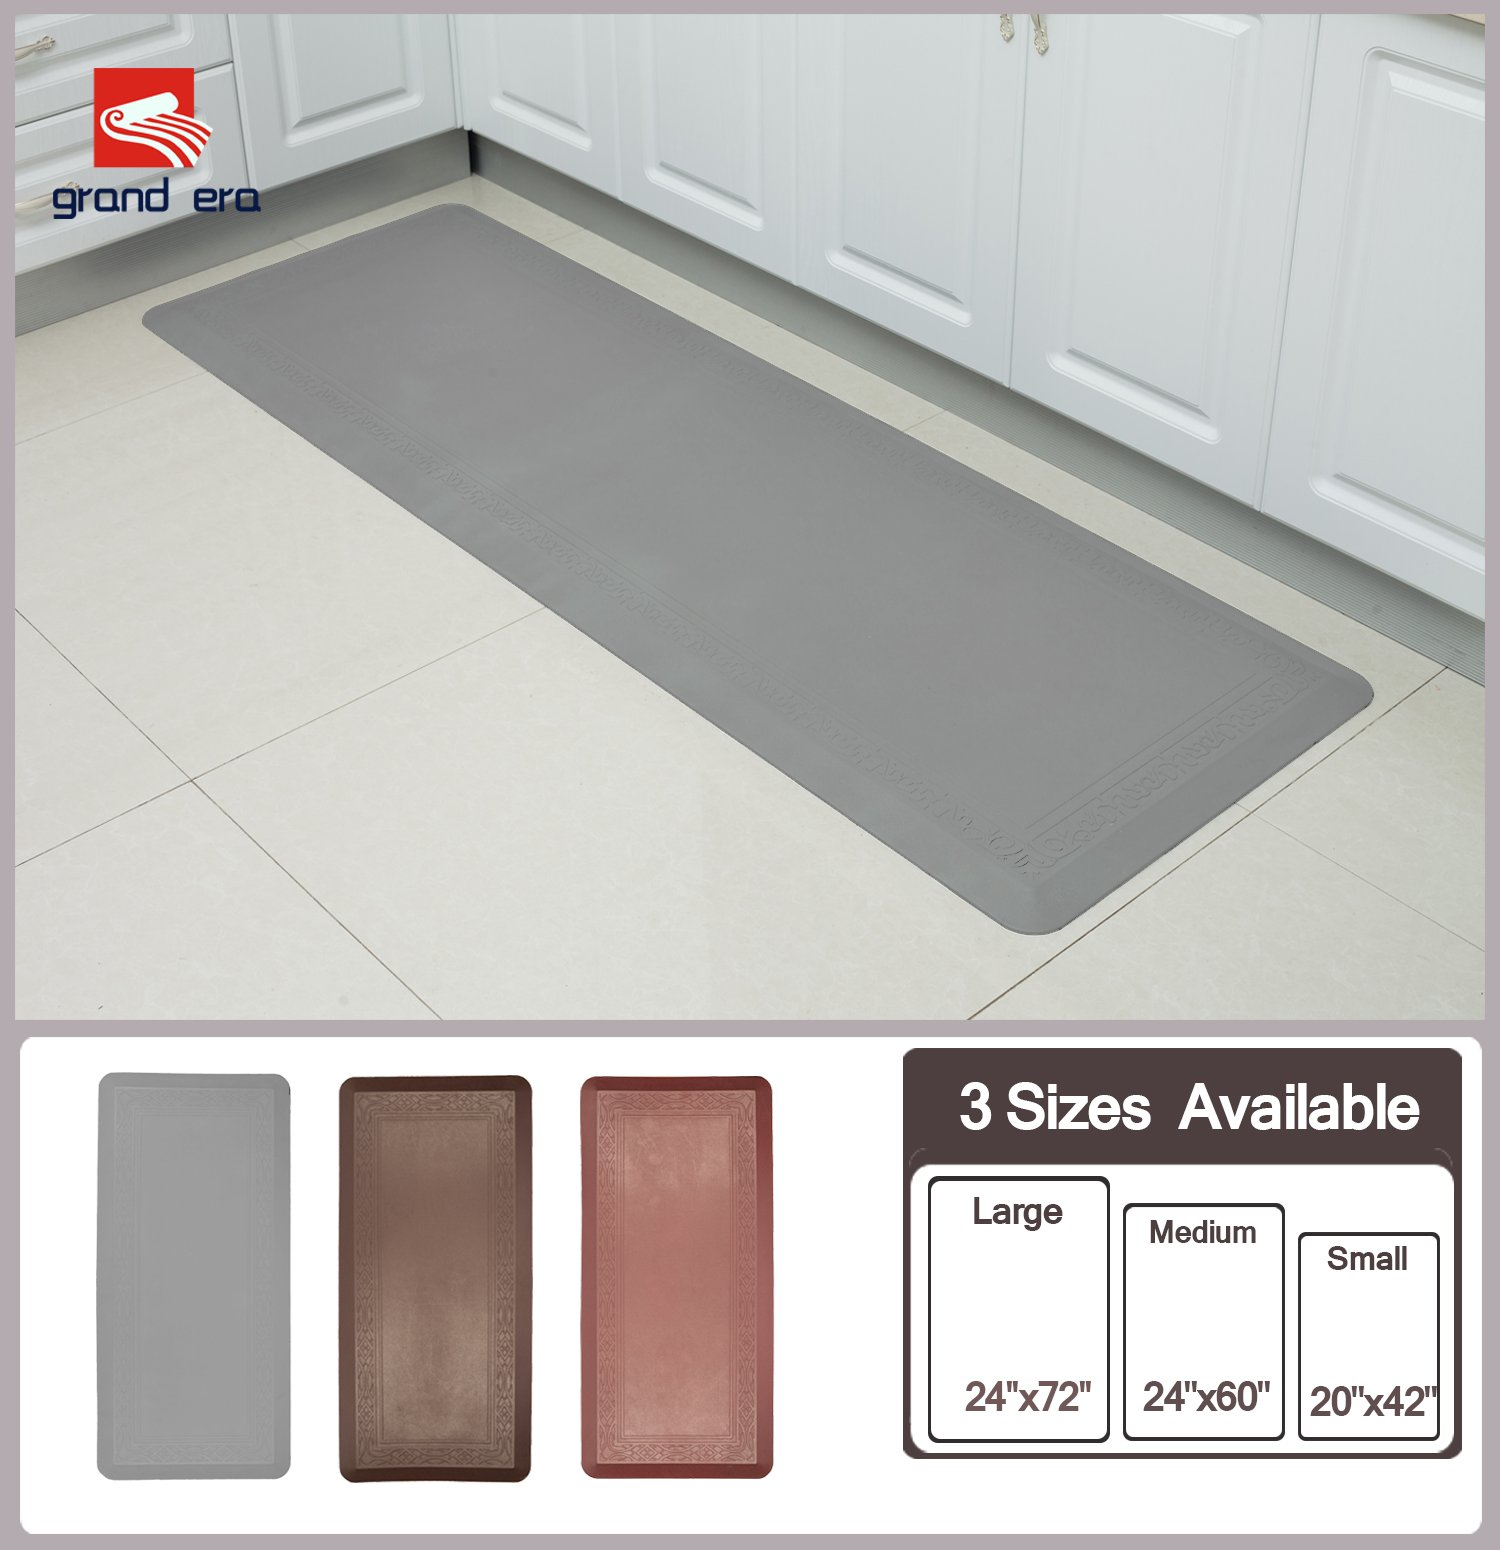 Grand Era Anti-Fatigue Comfort Mat Multi Surface All-Purpose Luxurious Comfort - for Kitchen, Bathroom or Workstations, 24'' x 60'', Gray by GRAND ERA